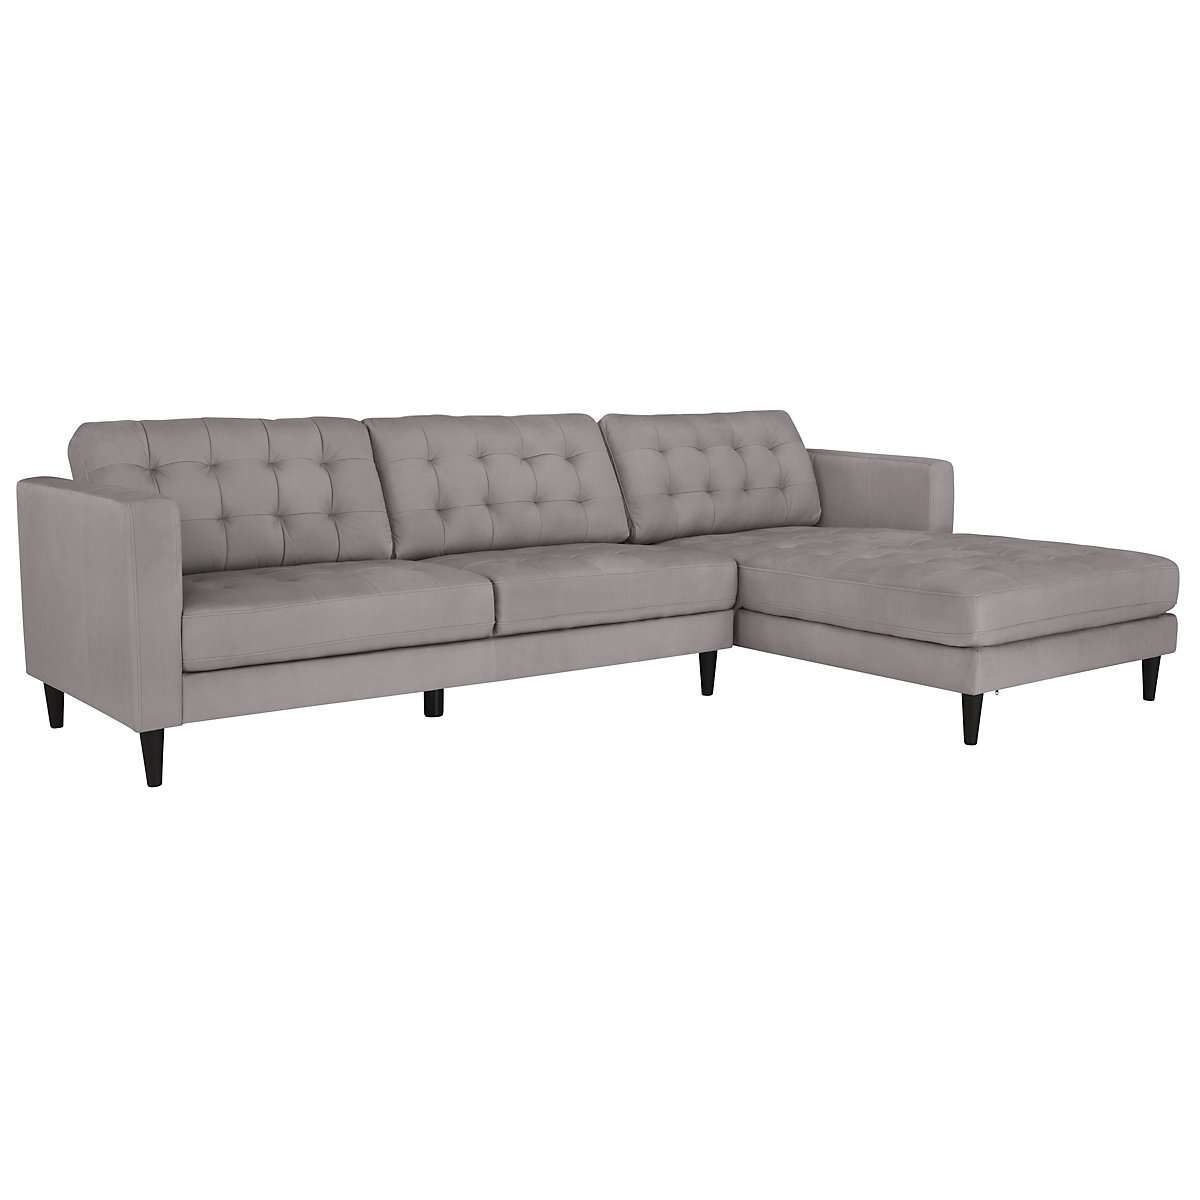 Shae Light Gray Microfiber Right Chaise Sectional